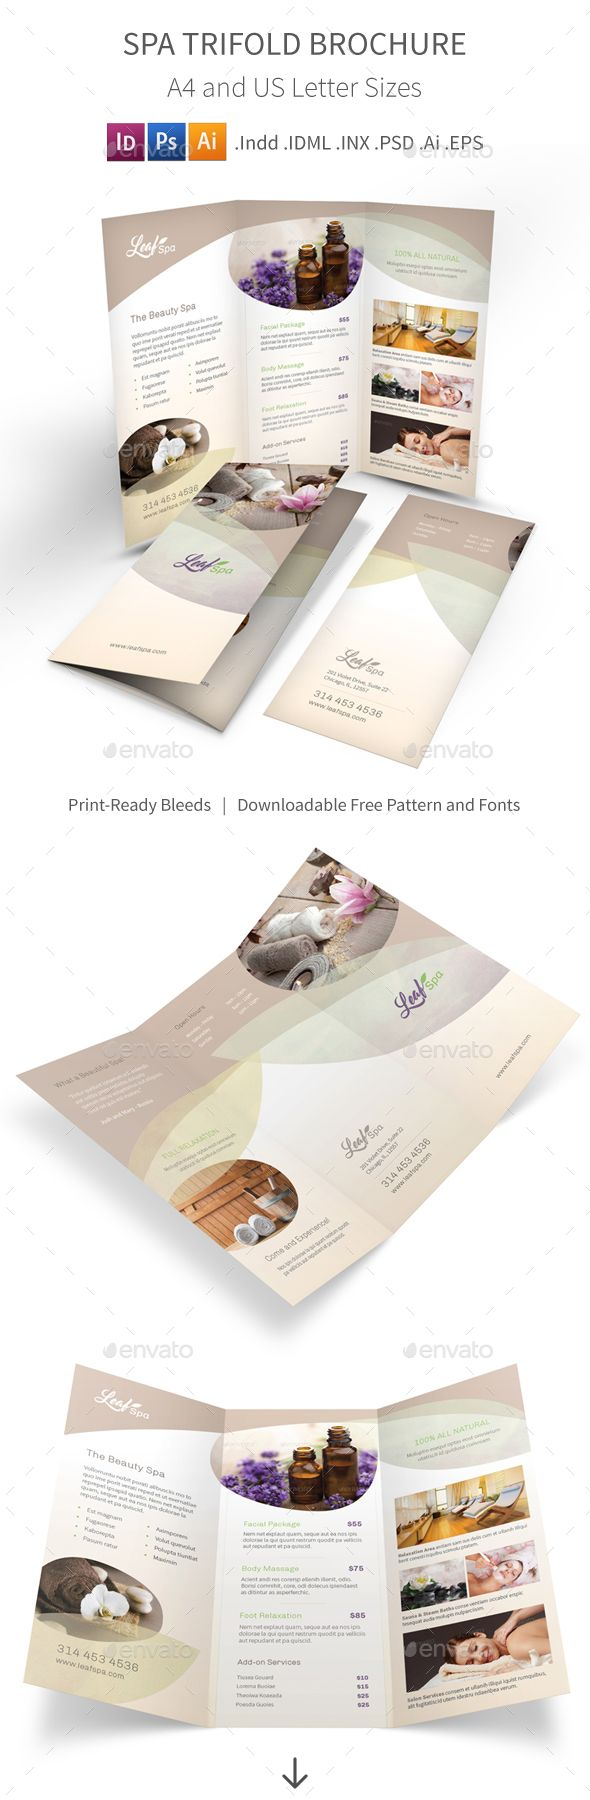 Spa Trifold Brochure 5 - Informational Brochures